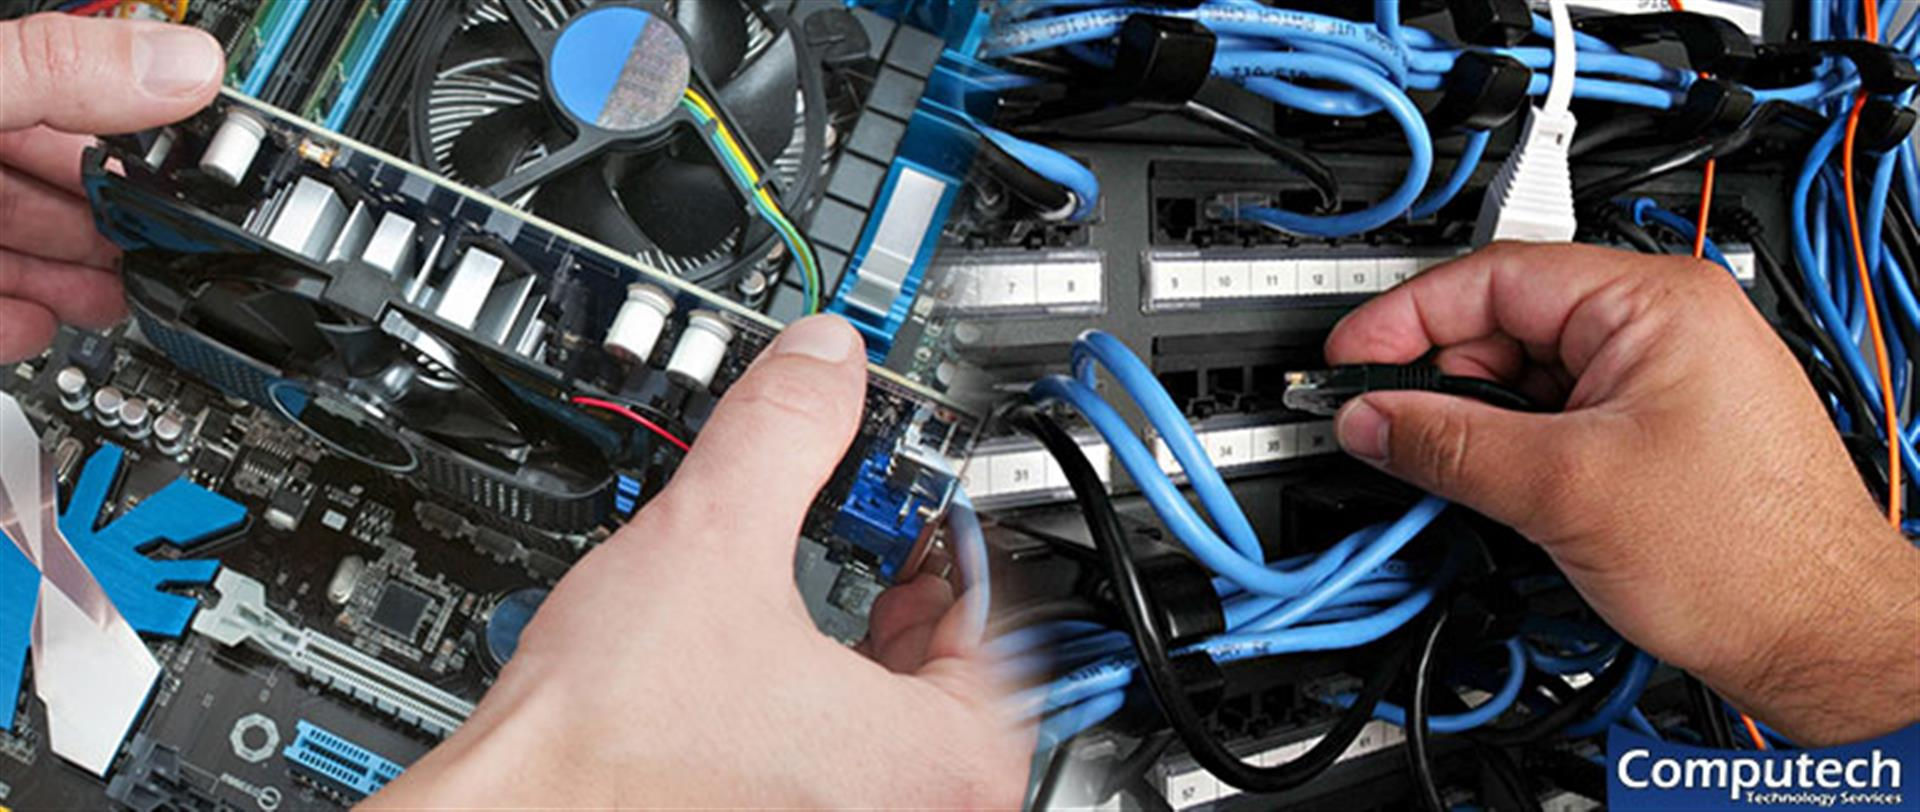 Wrightsville Georgia Onsite Computer & Printer Repairs, Networks, Voice & Data Cabling Contractors